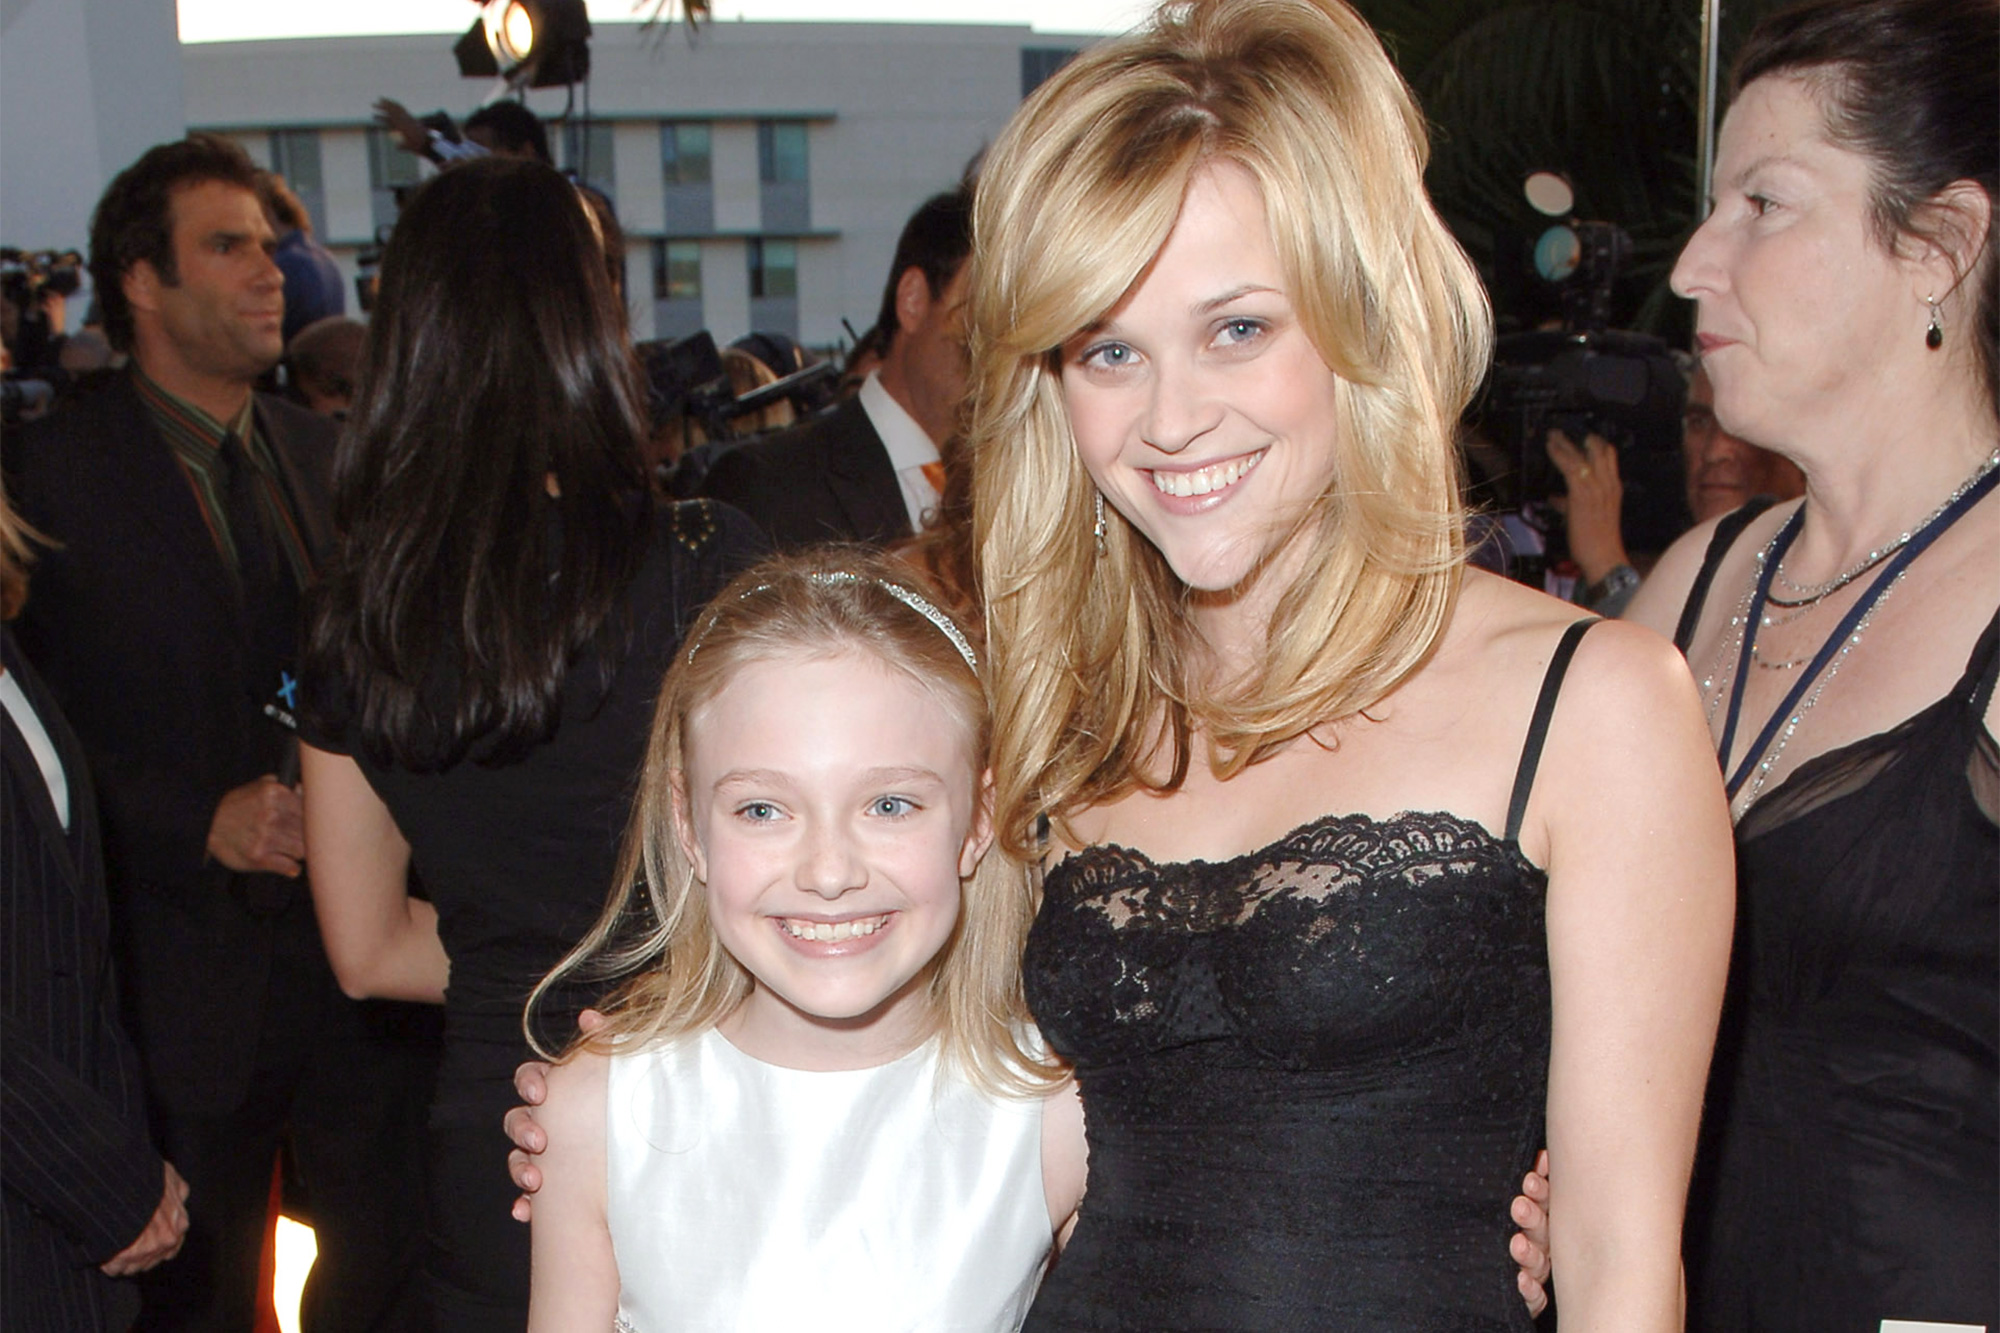 Dakota Fanning and Reese Witherspoon